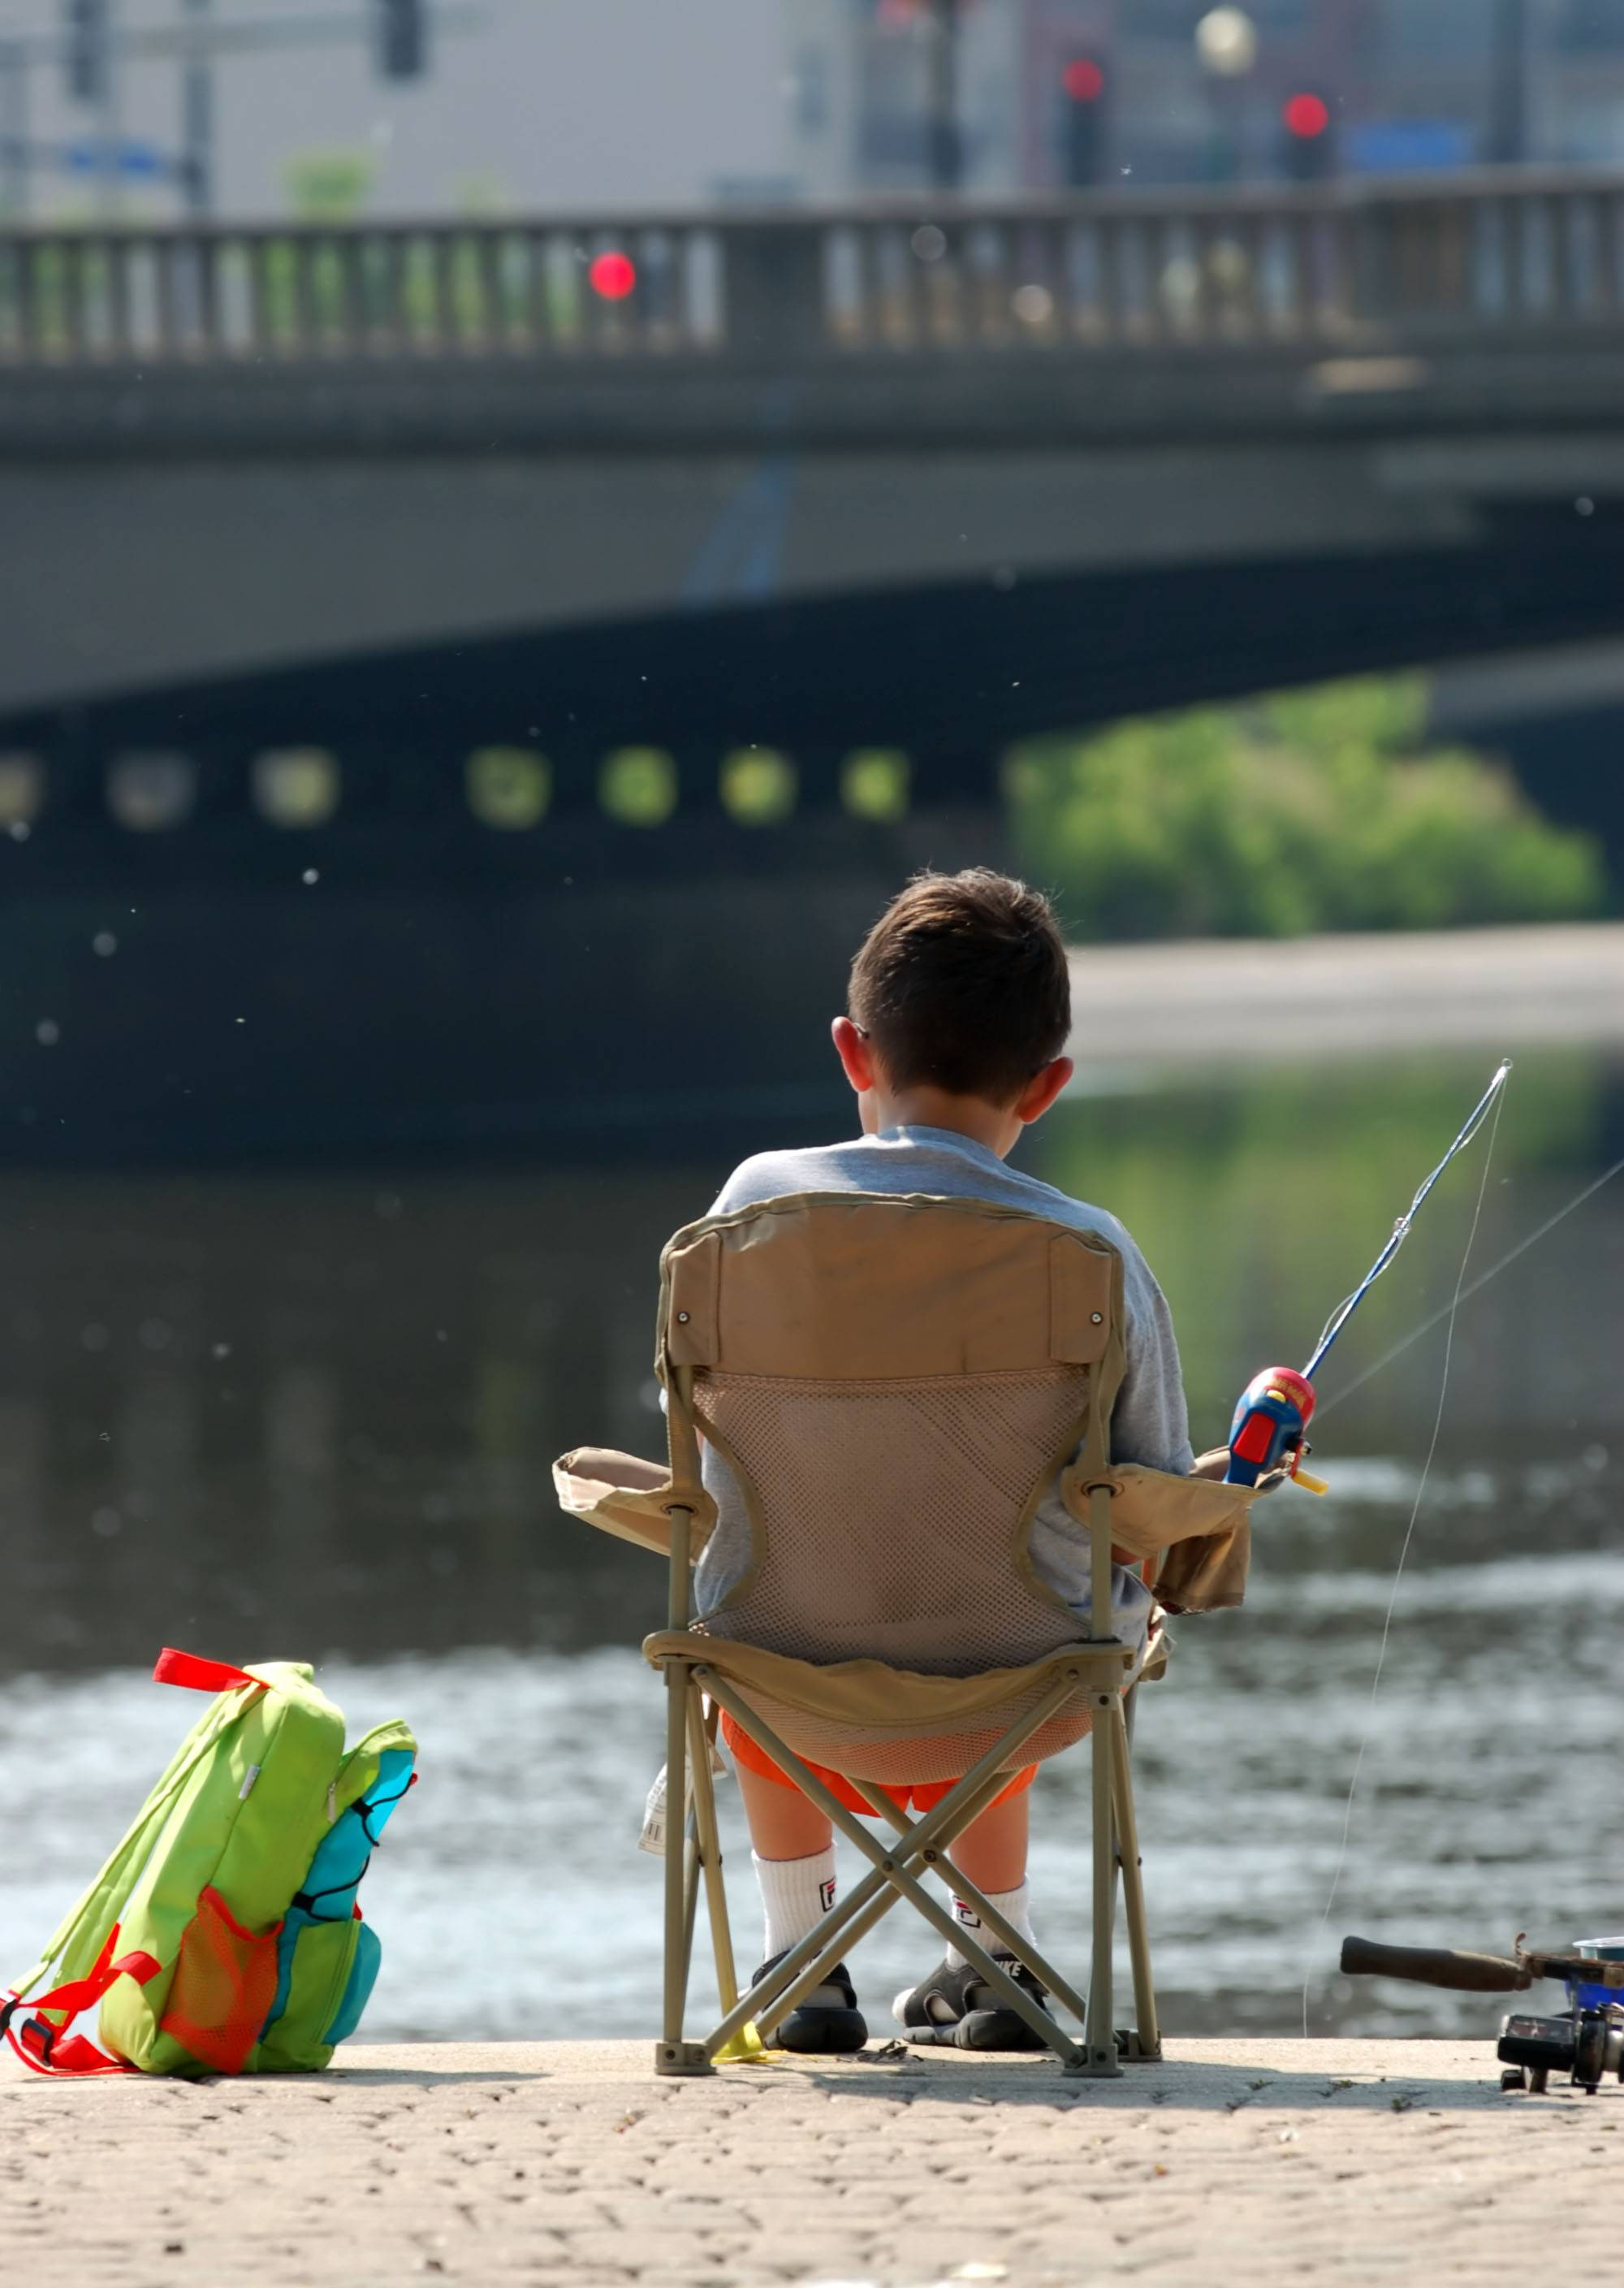 Michael Garand, 9, of Elgin, sits patiently while waiting for a fish at a previous Fish for Fun derby in Elgin.